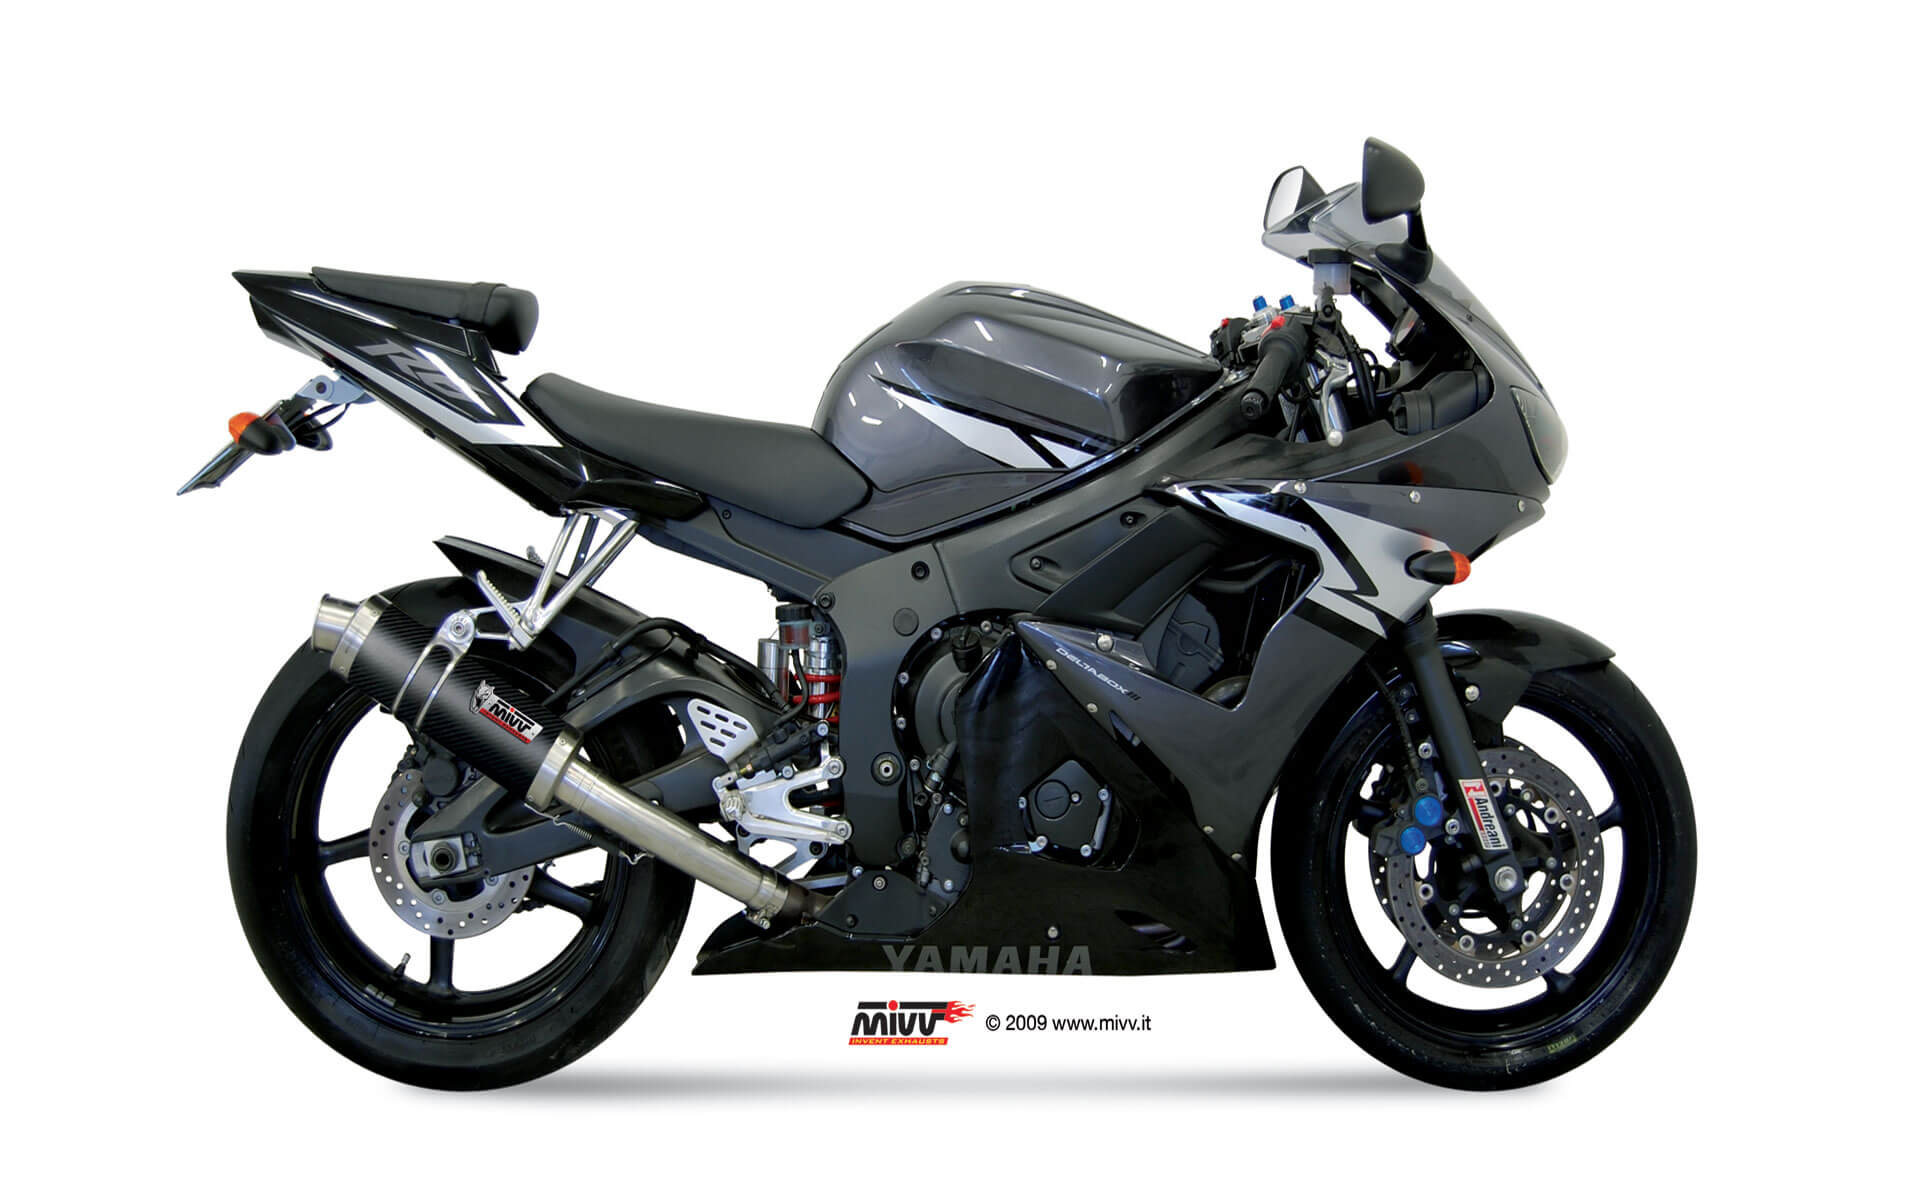 Yamaha_YZF_R6_03-05_73Y013L2S_01_PPG